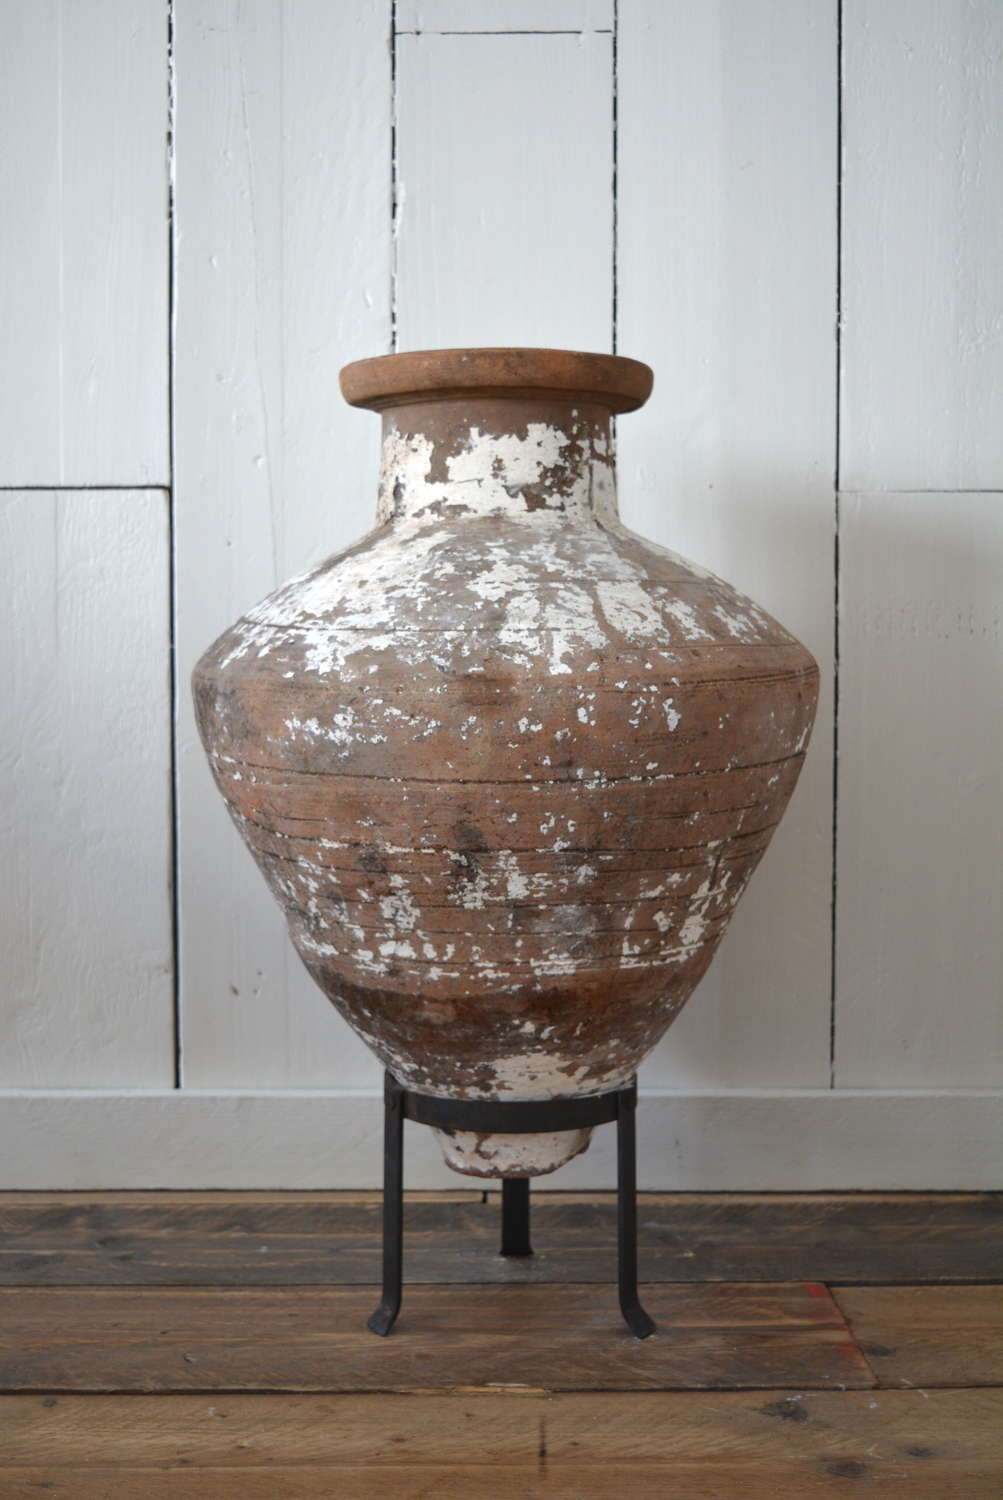 EARLY 20TH CENTURY TURKISH OLIVE POT